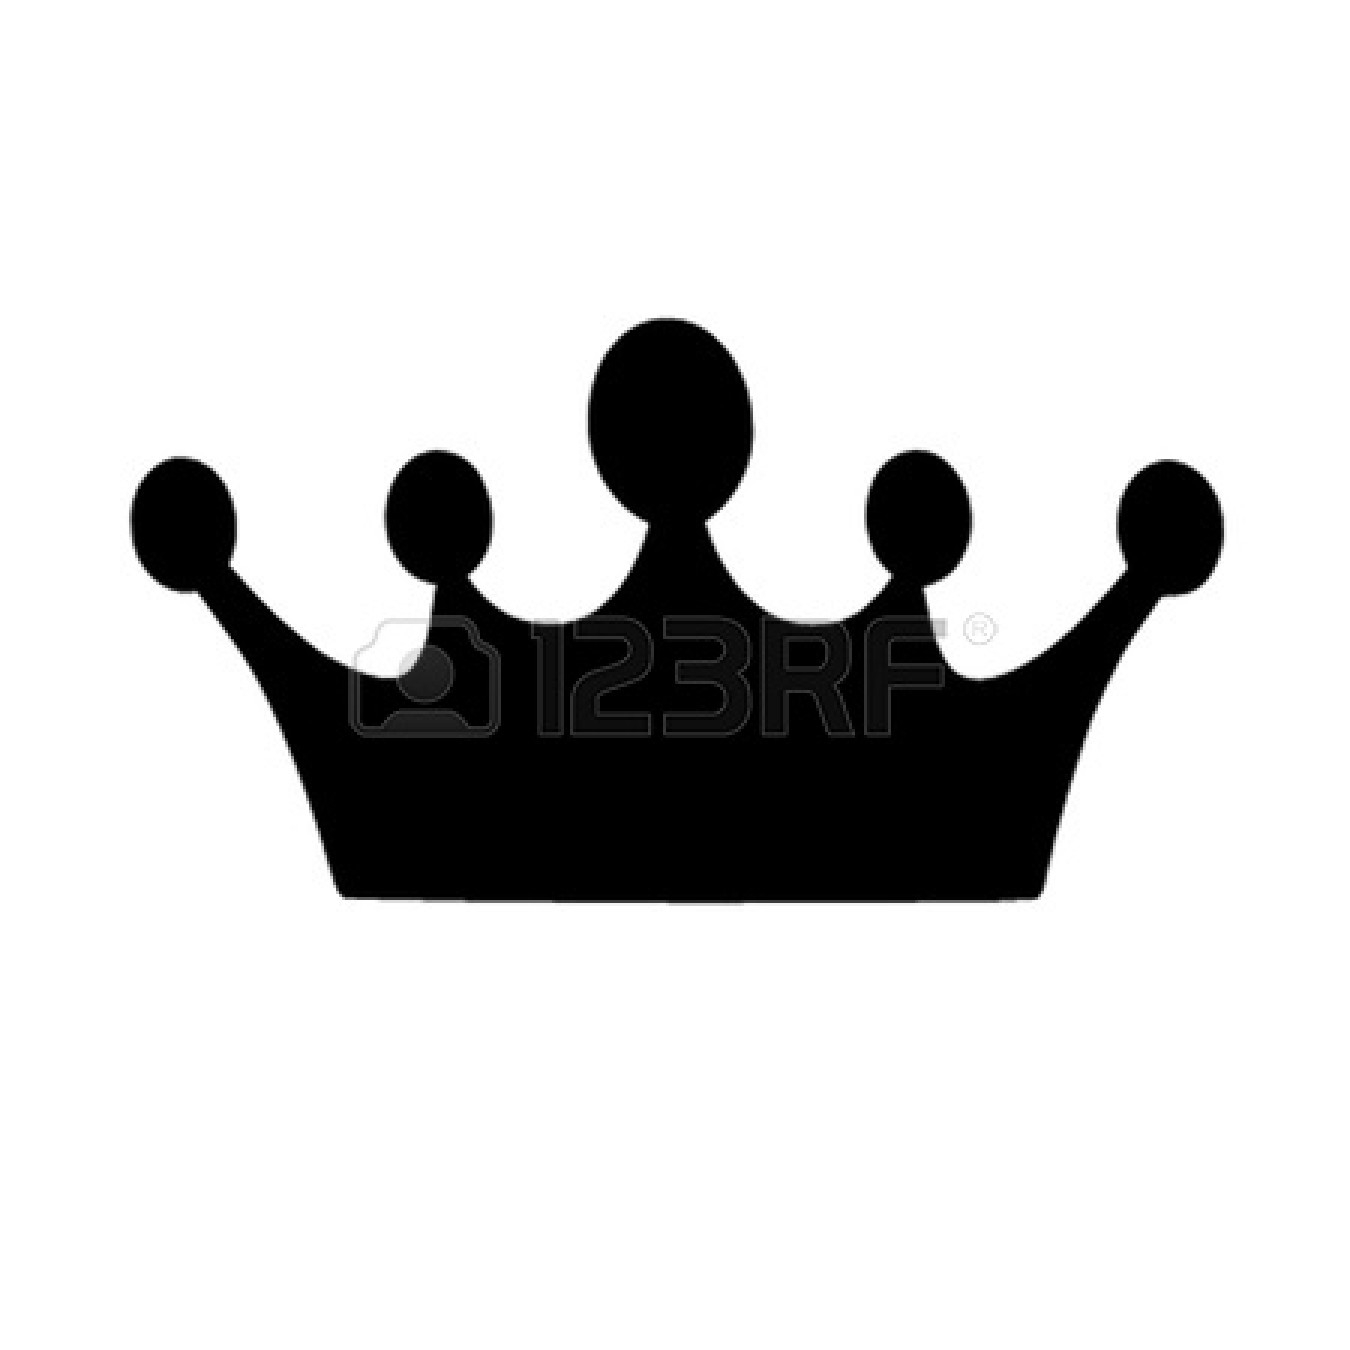 Black crown clipart Inspirational Crown black and white.